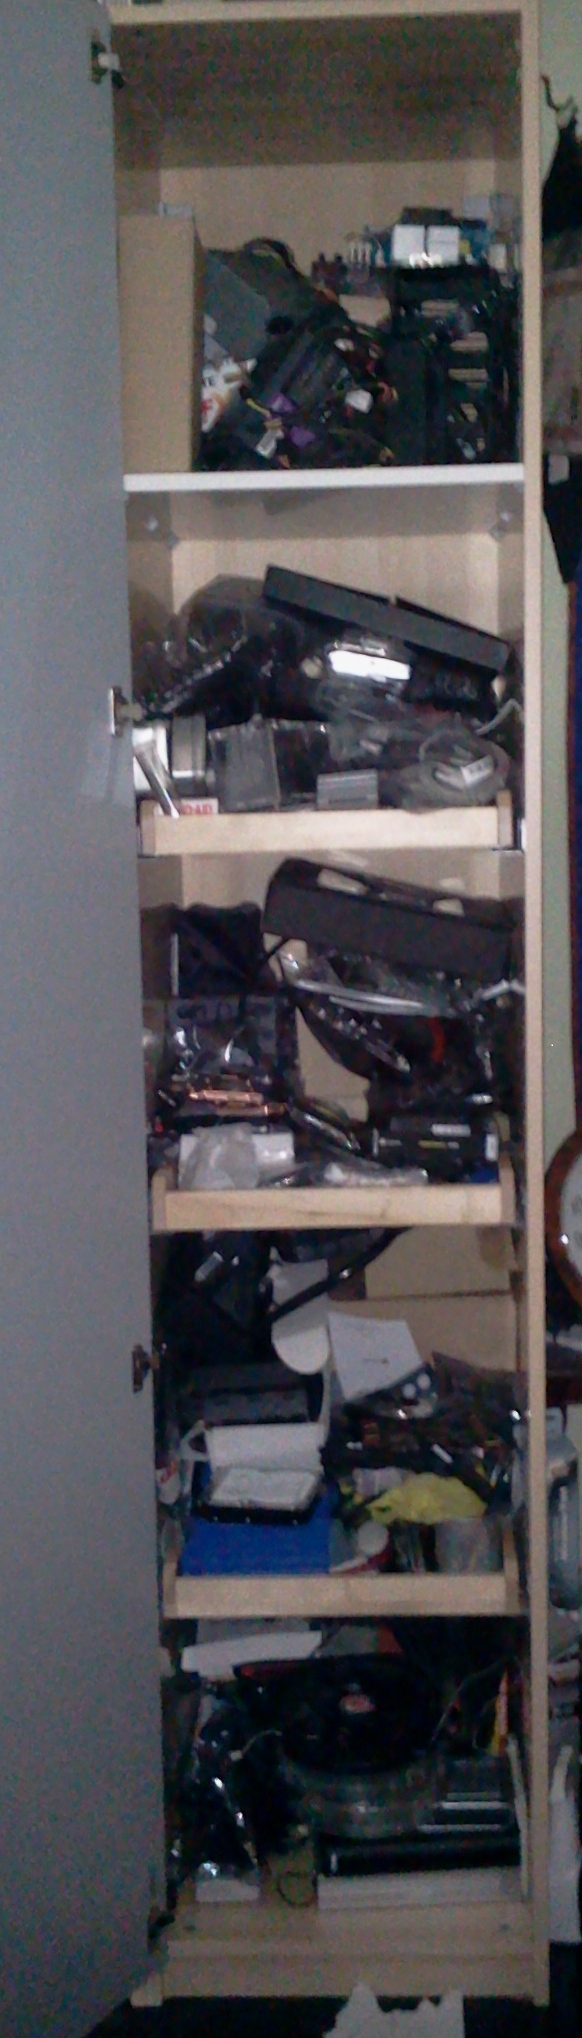 Closet picture.png